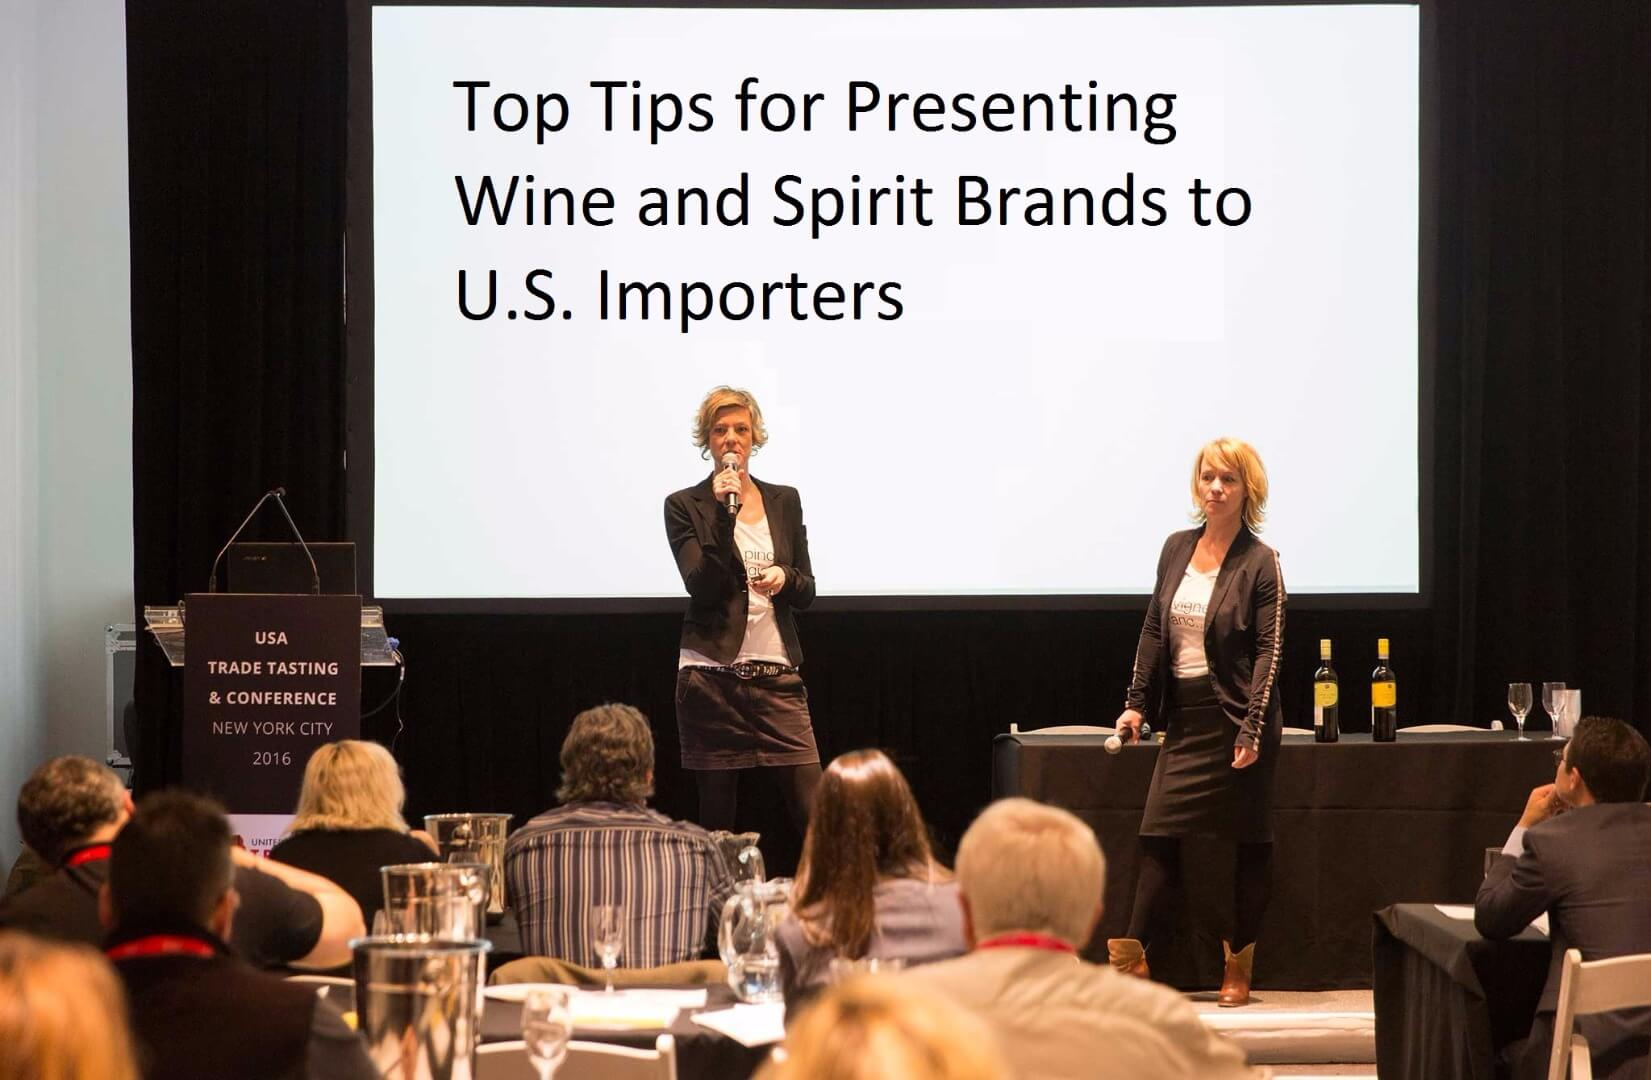 poster for Top Tips for Presenting Wine and Spirit Brands to U.S. Importers